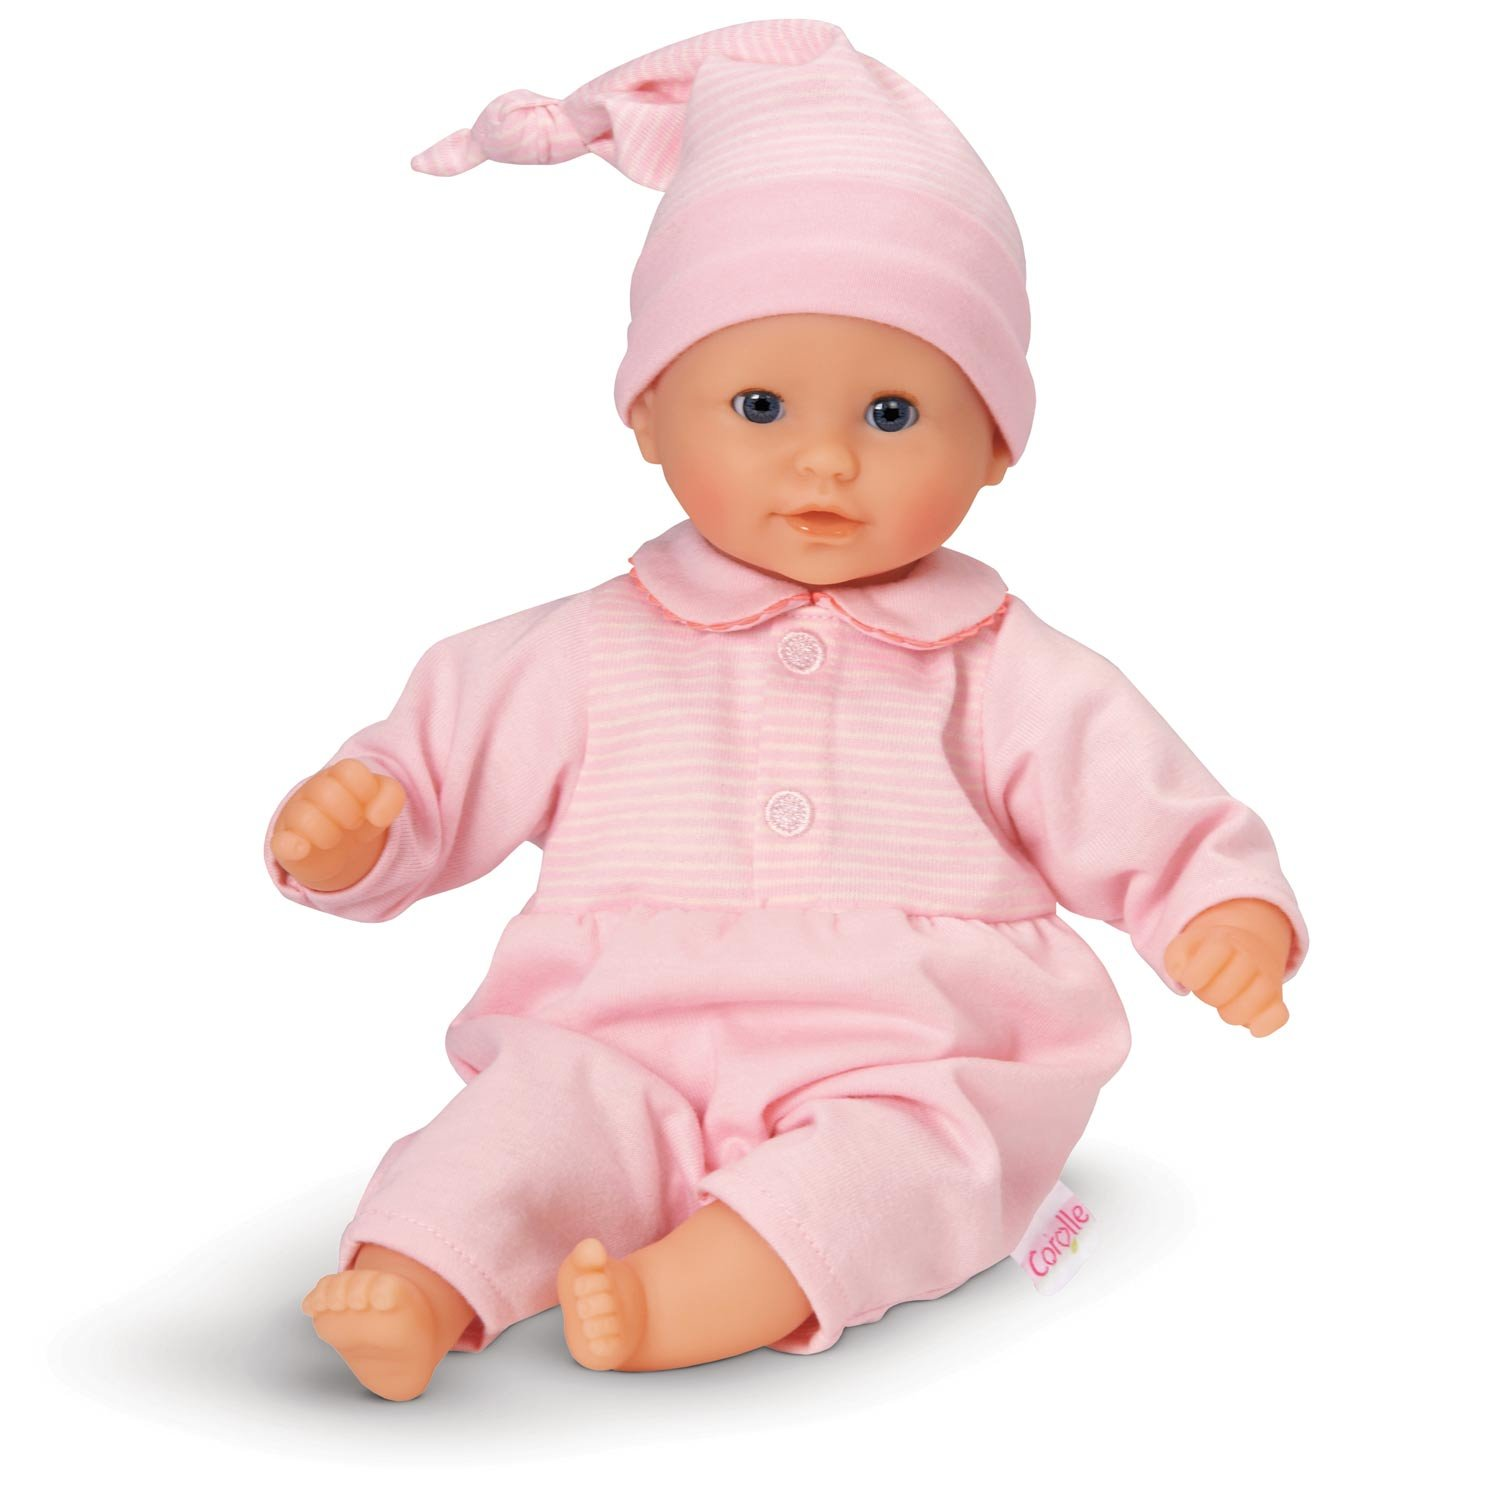 Corolle Calin Charming Pastel Baby Doll Corolle USA CJC35